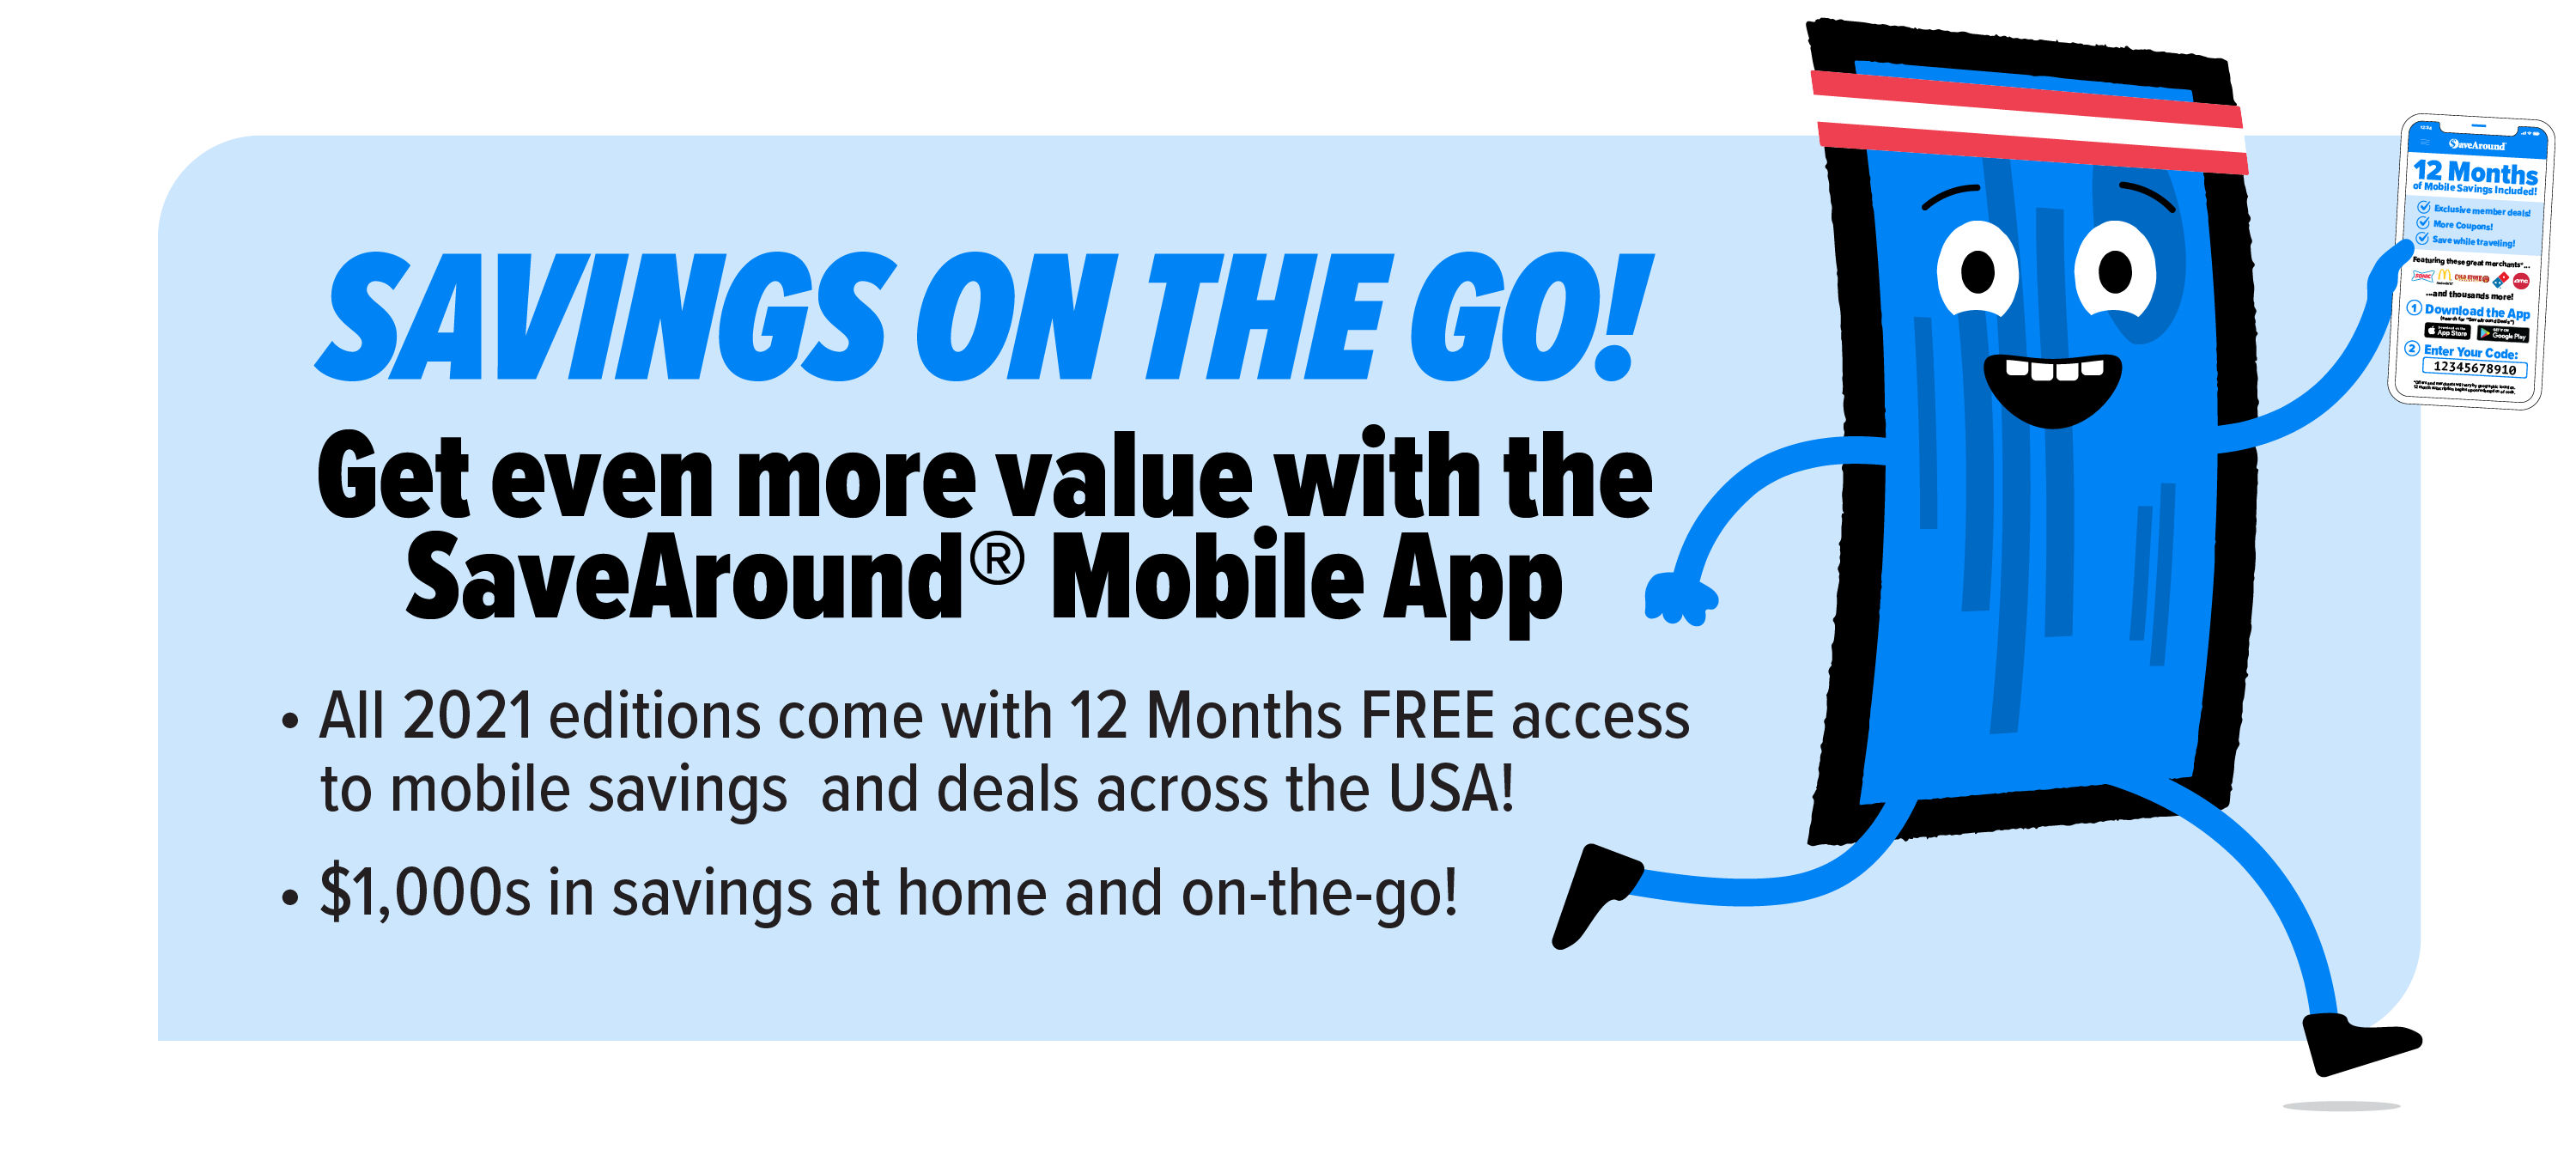 Savings on the Go! Get even more value with the SaveAround® Mobile App! All 2021 editions come with 12 Months FREE access	to mobile savings and deals across the USA! $1,000s in savings at home and on-the-go!